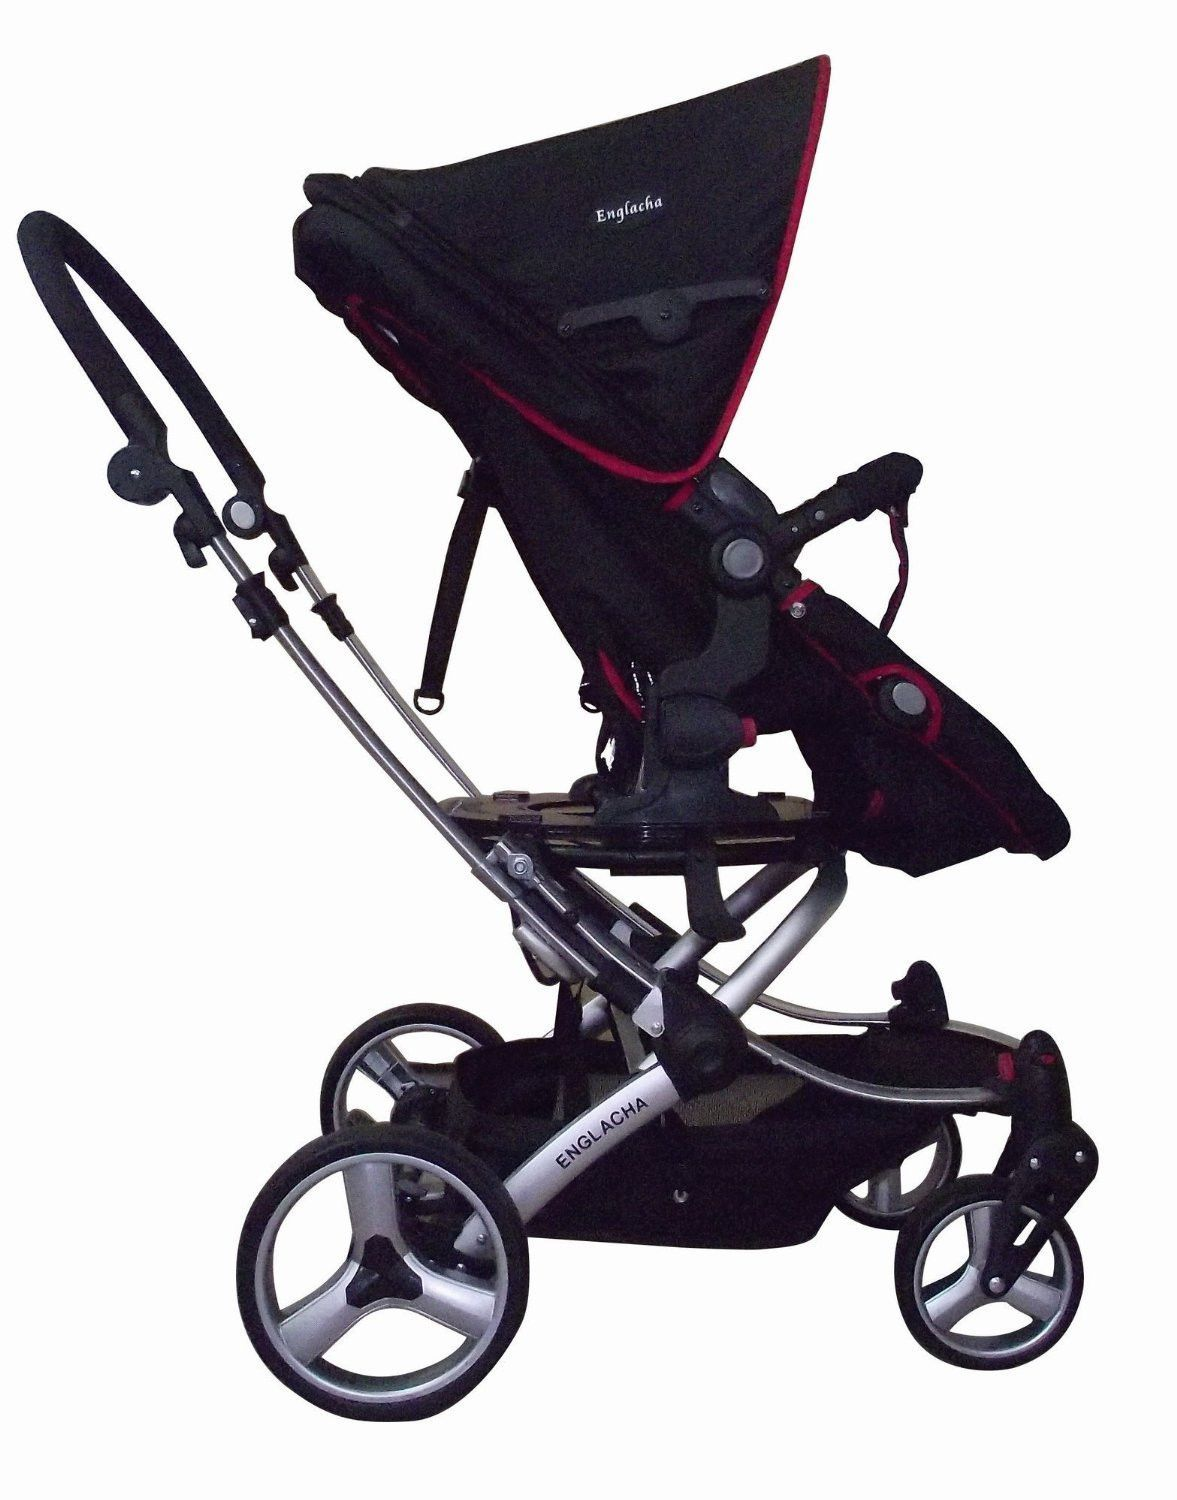 Graco Infant Car Seat Stroller Instructions Englacha My Easy Stroller Black Products Baby